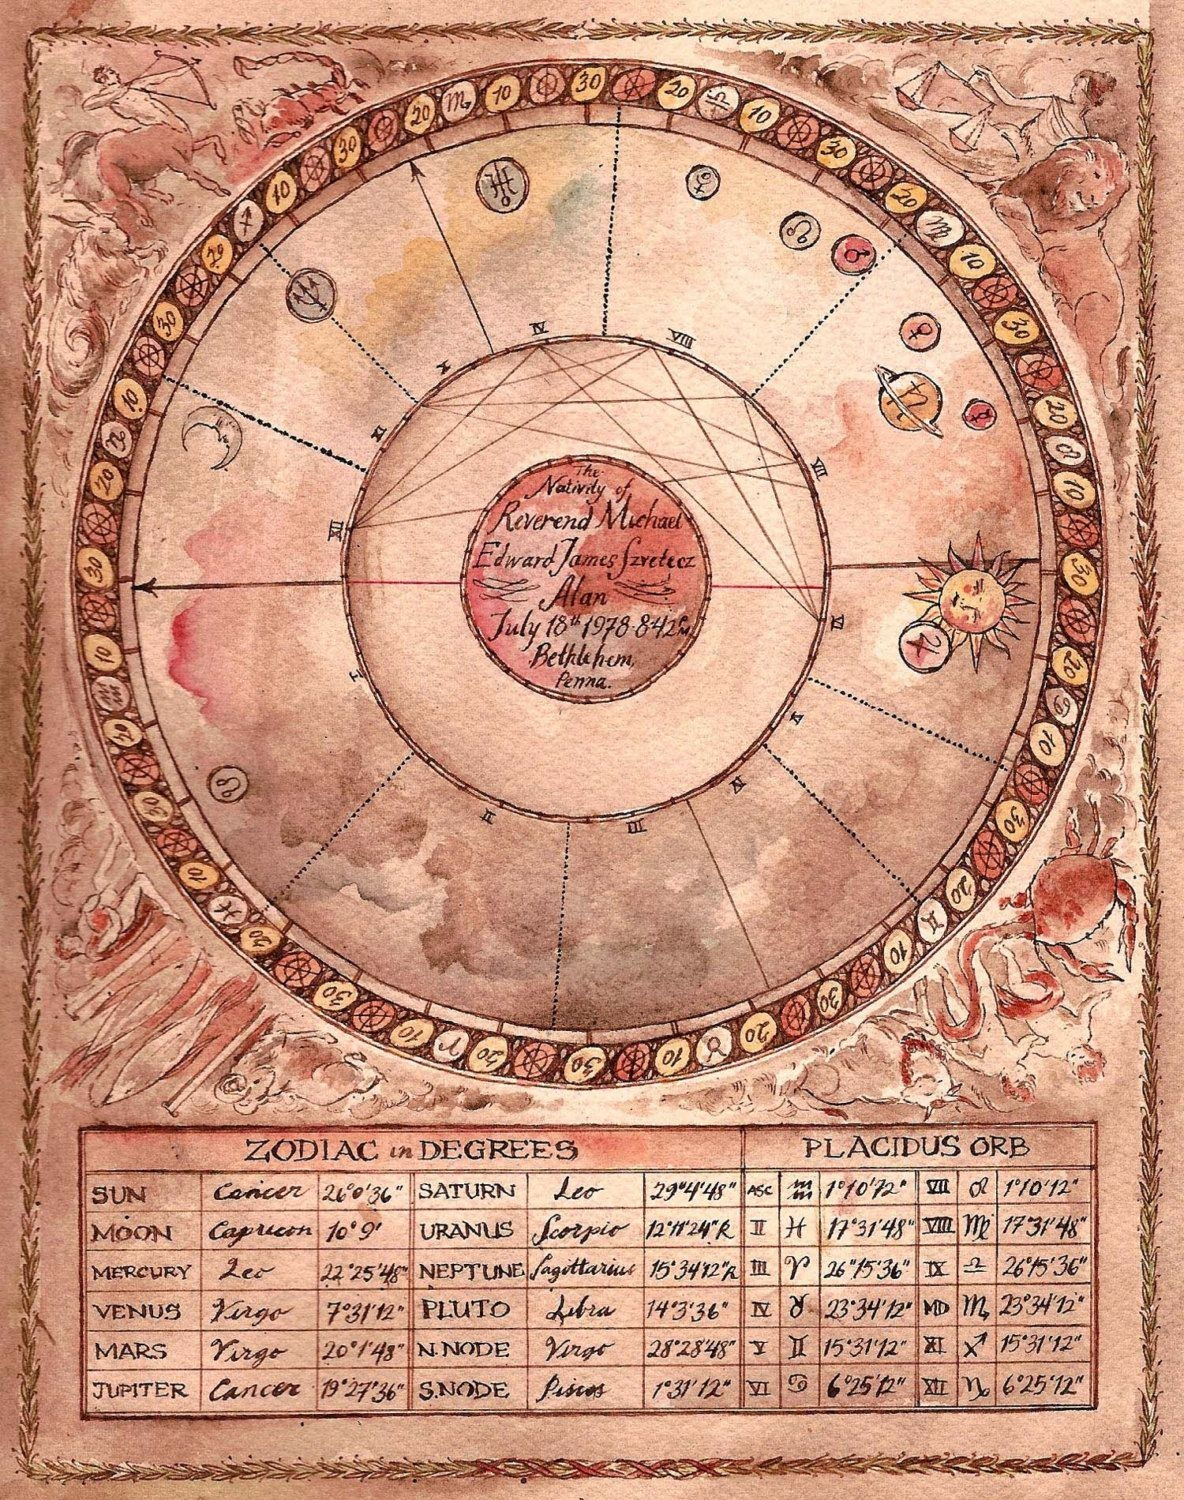 Daily Horoscope for March 24: Astrological Prediction for Zodiac Signs